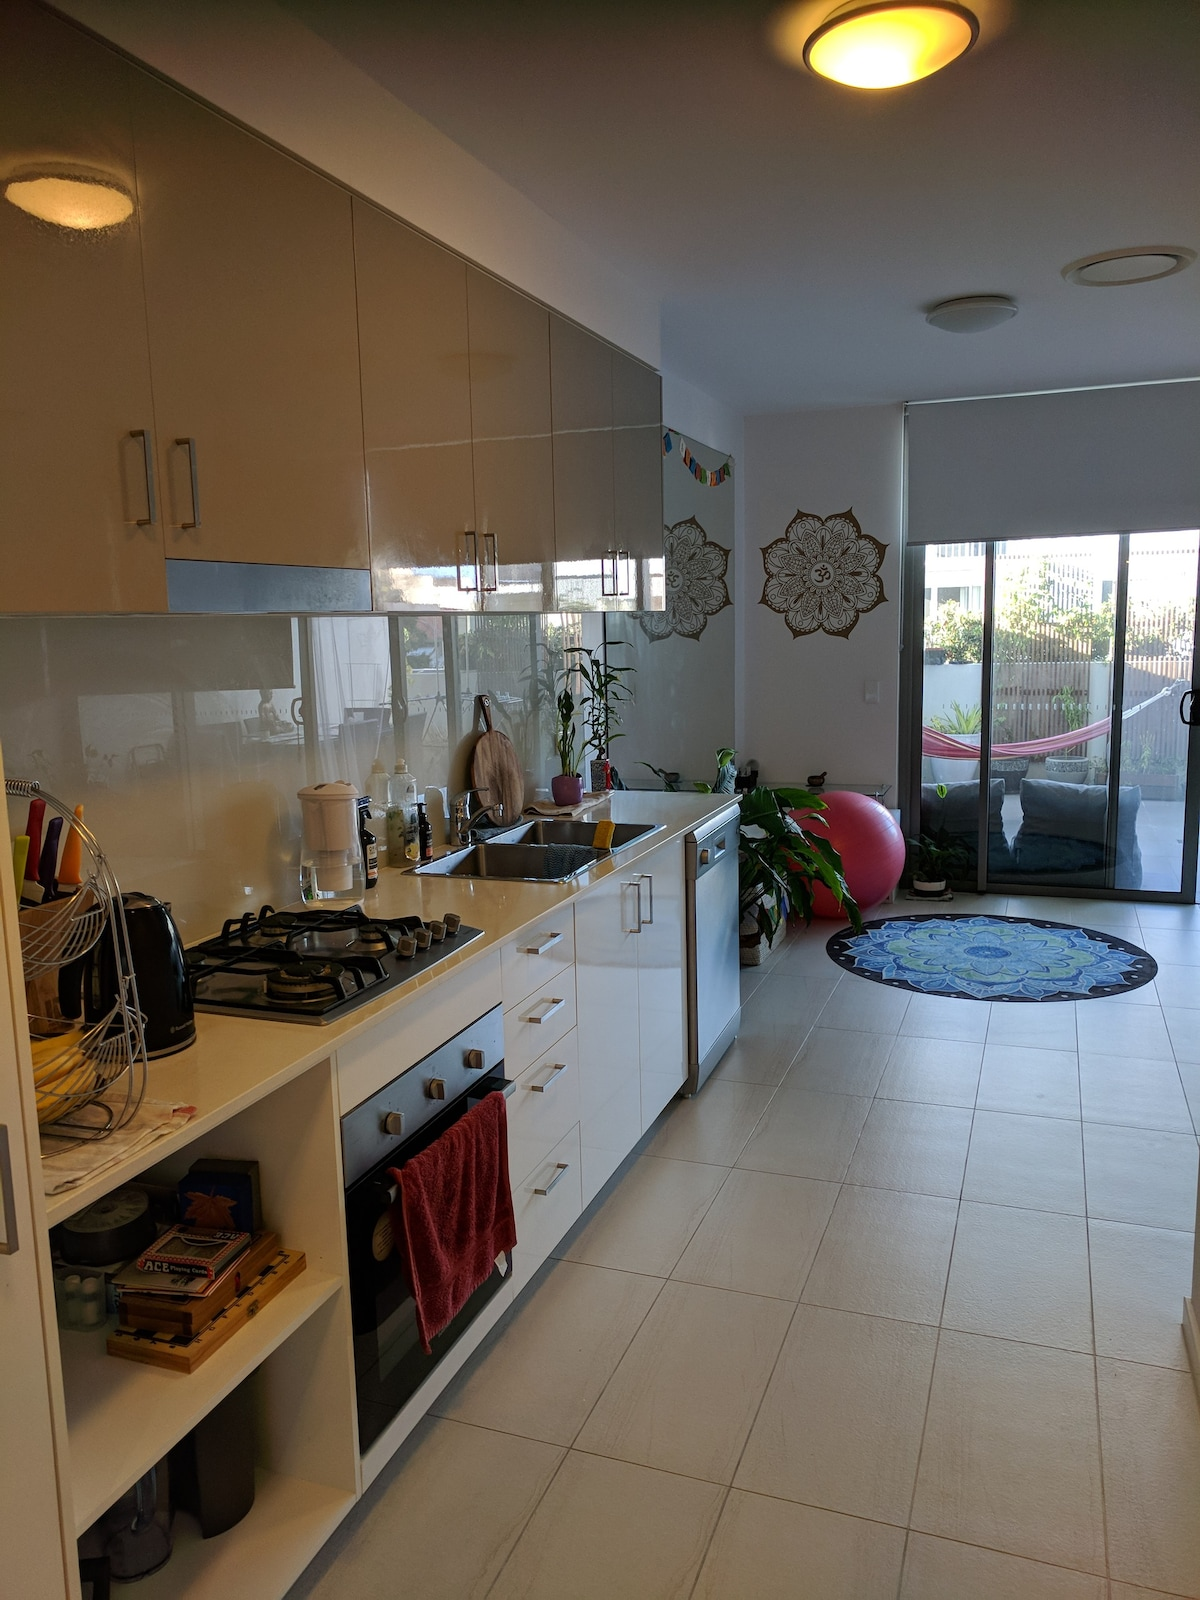 the coast broadwater yogi space apartment   apartments for rent in labrador queensland australia the coast broadwater yogi space apartment   apartments for rent in      rh   airbnb